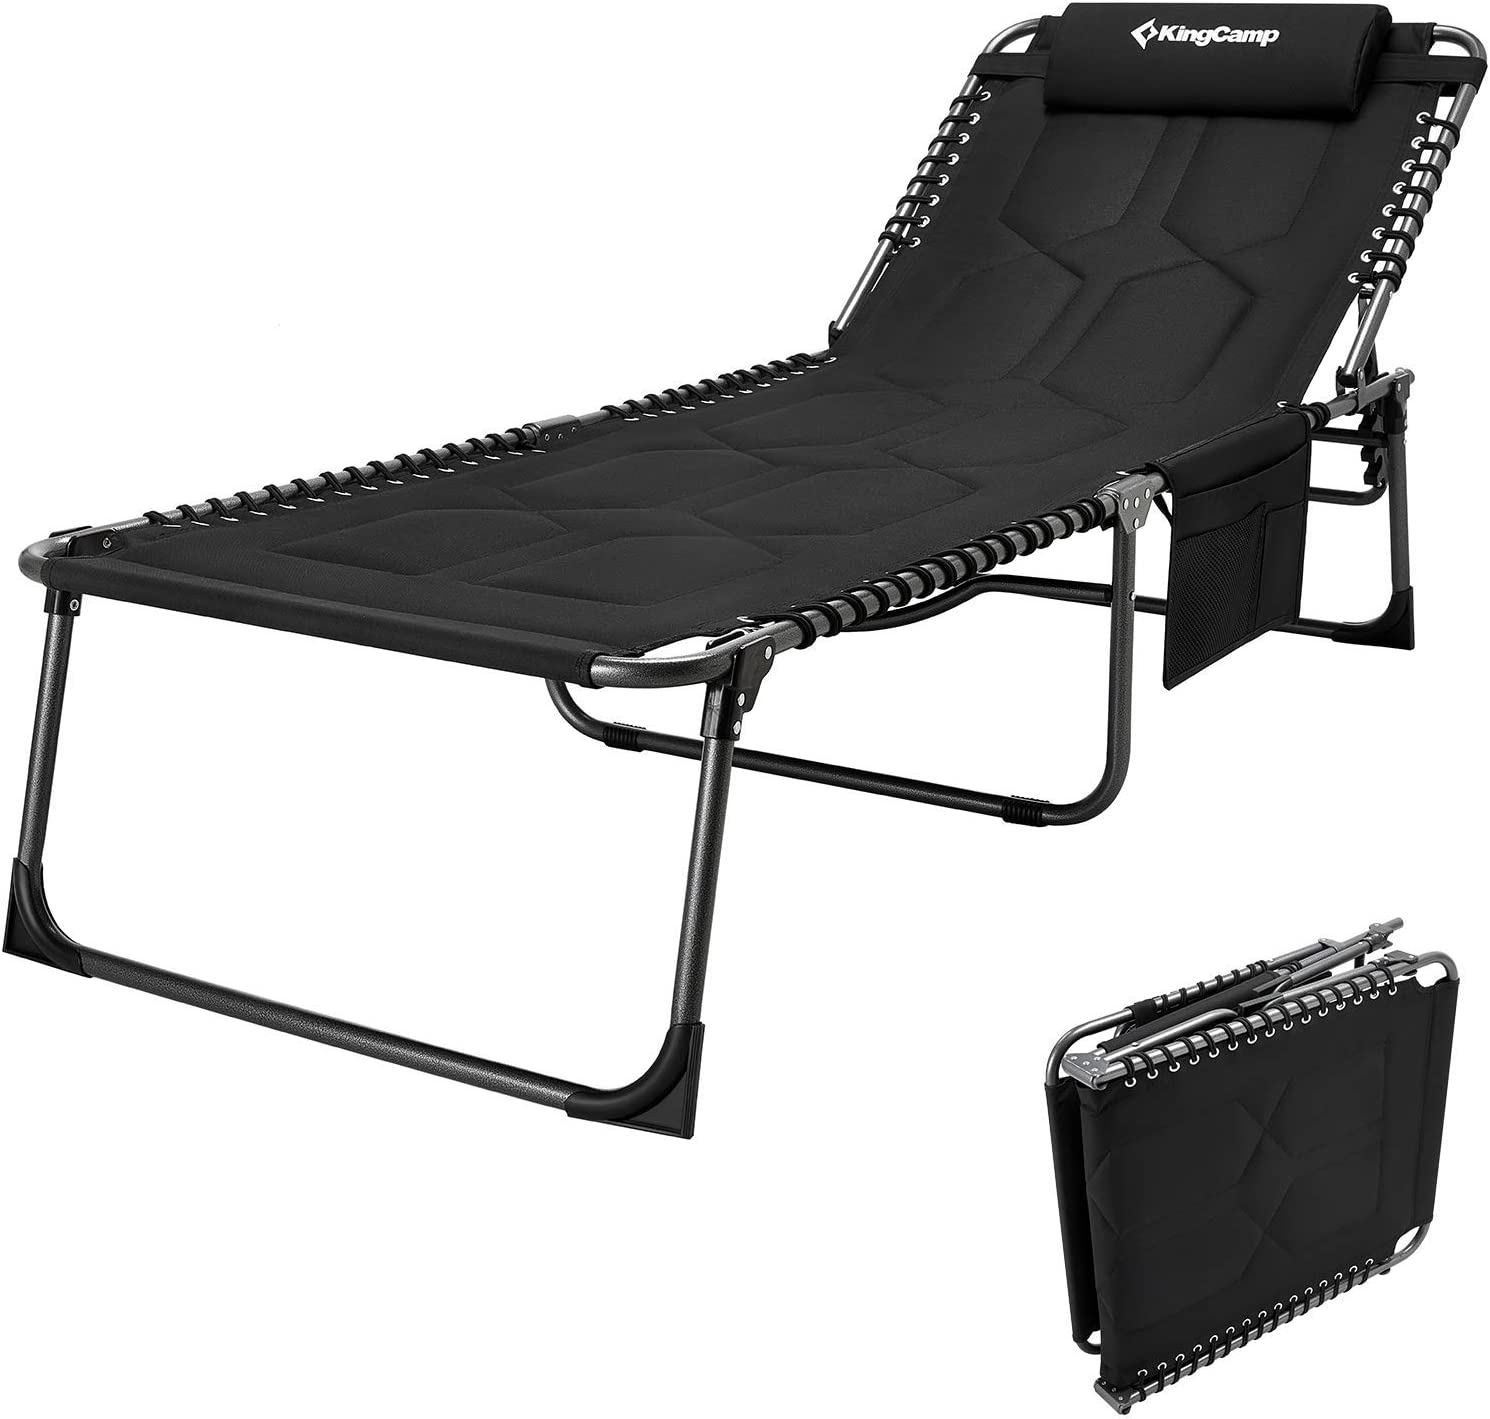 KingCamp 4-Fold Oversize Folding Chaise Lounge Chair for Outdoor, Indoor, Beach, Patio, Lawn, Heavy-Duty Adjustable Camping Recliner with Pillow, Cotton Padded, Side Pocket, Support 330lb : Garden & Outdoor